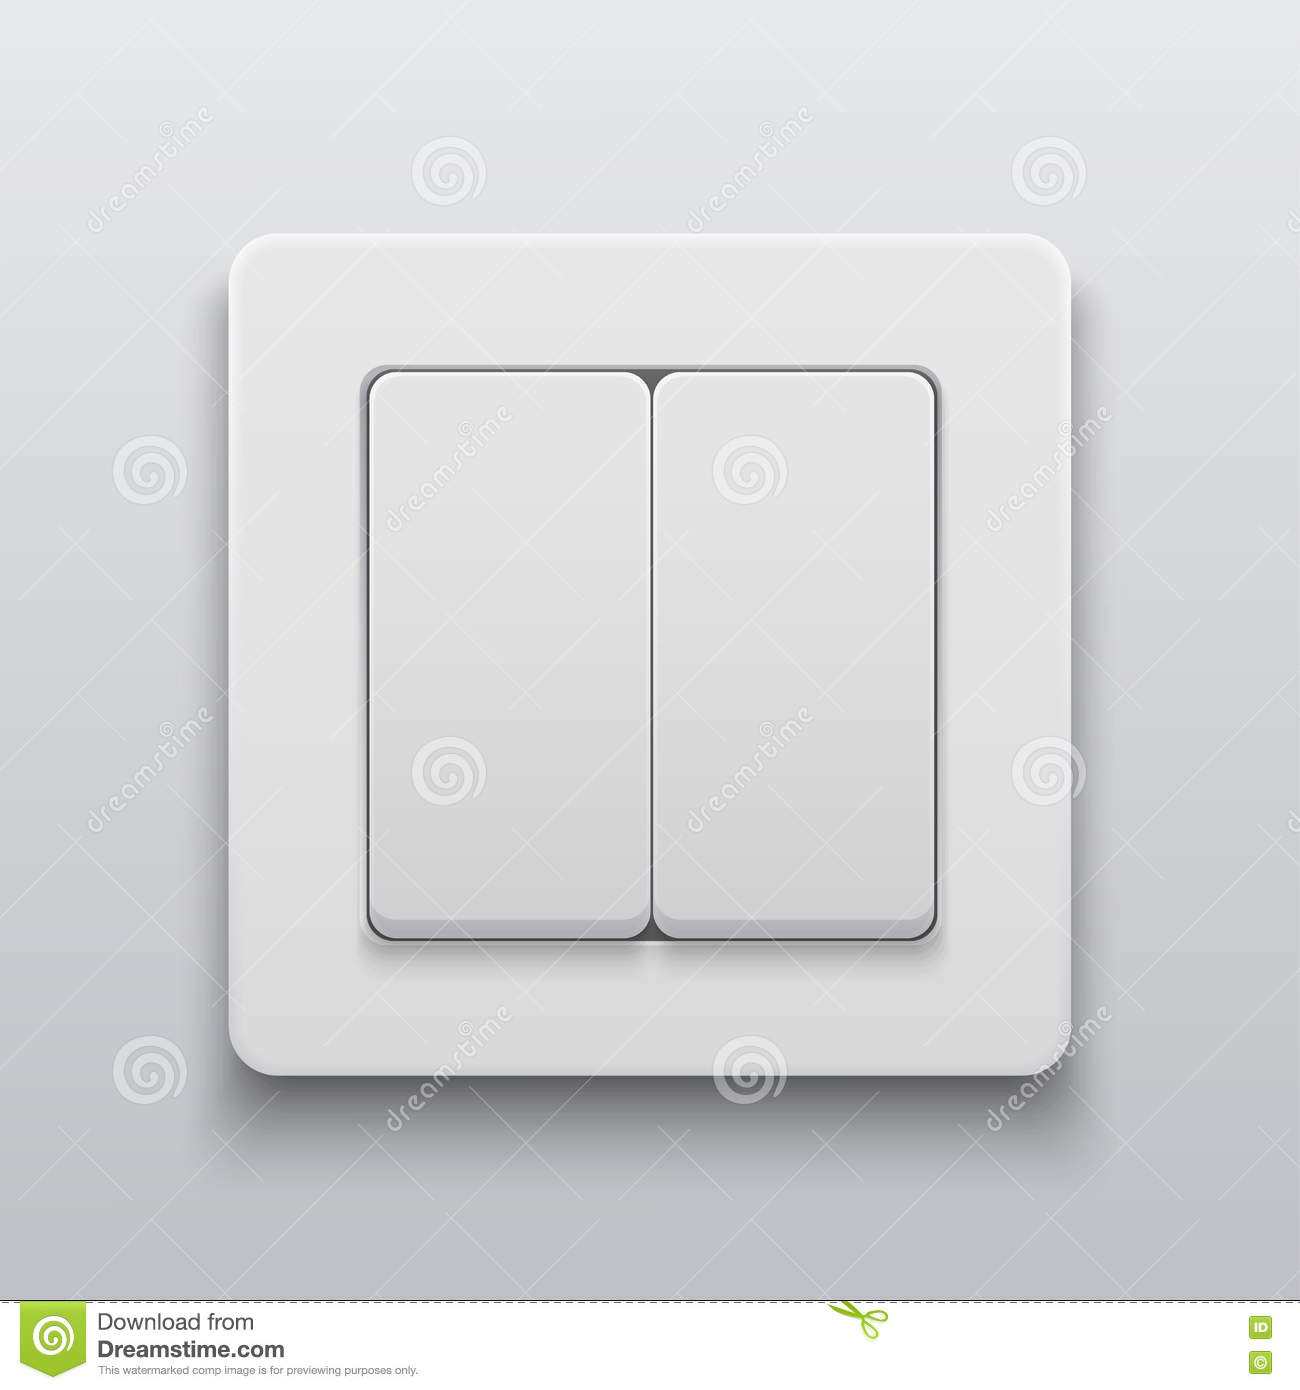 Vector Modern Light Switch Icon Background. Stock Vector ...